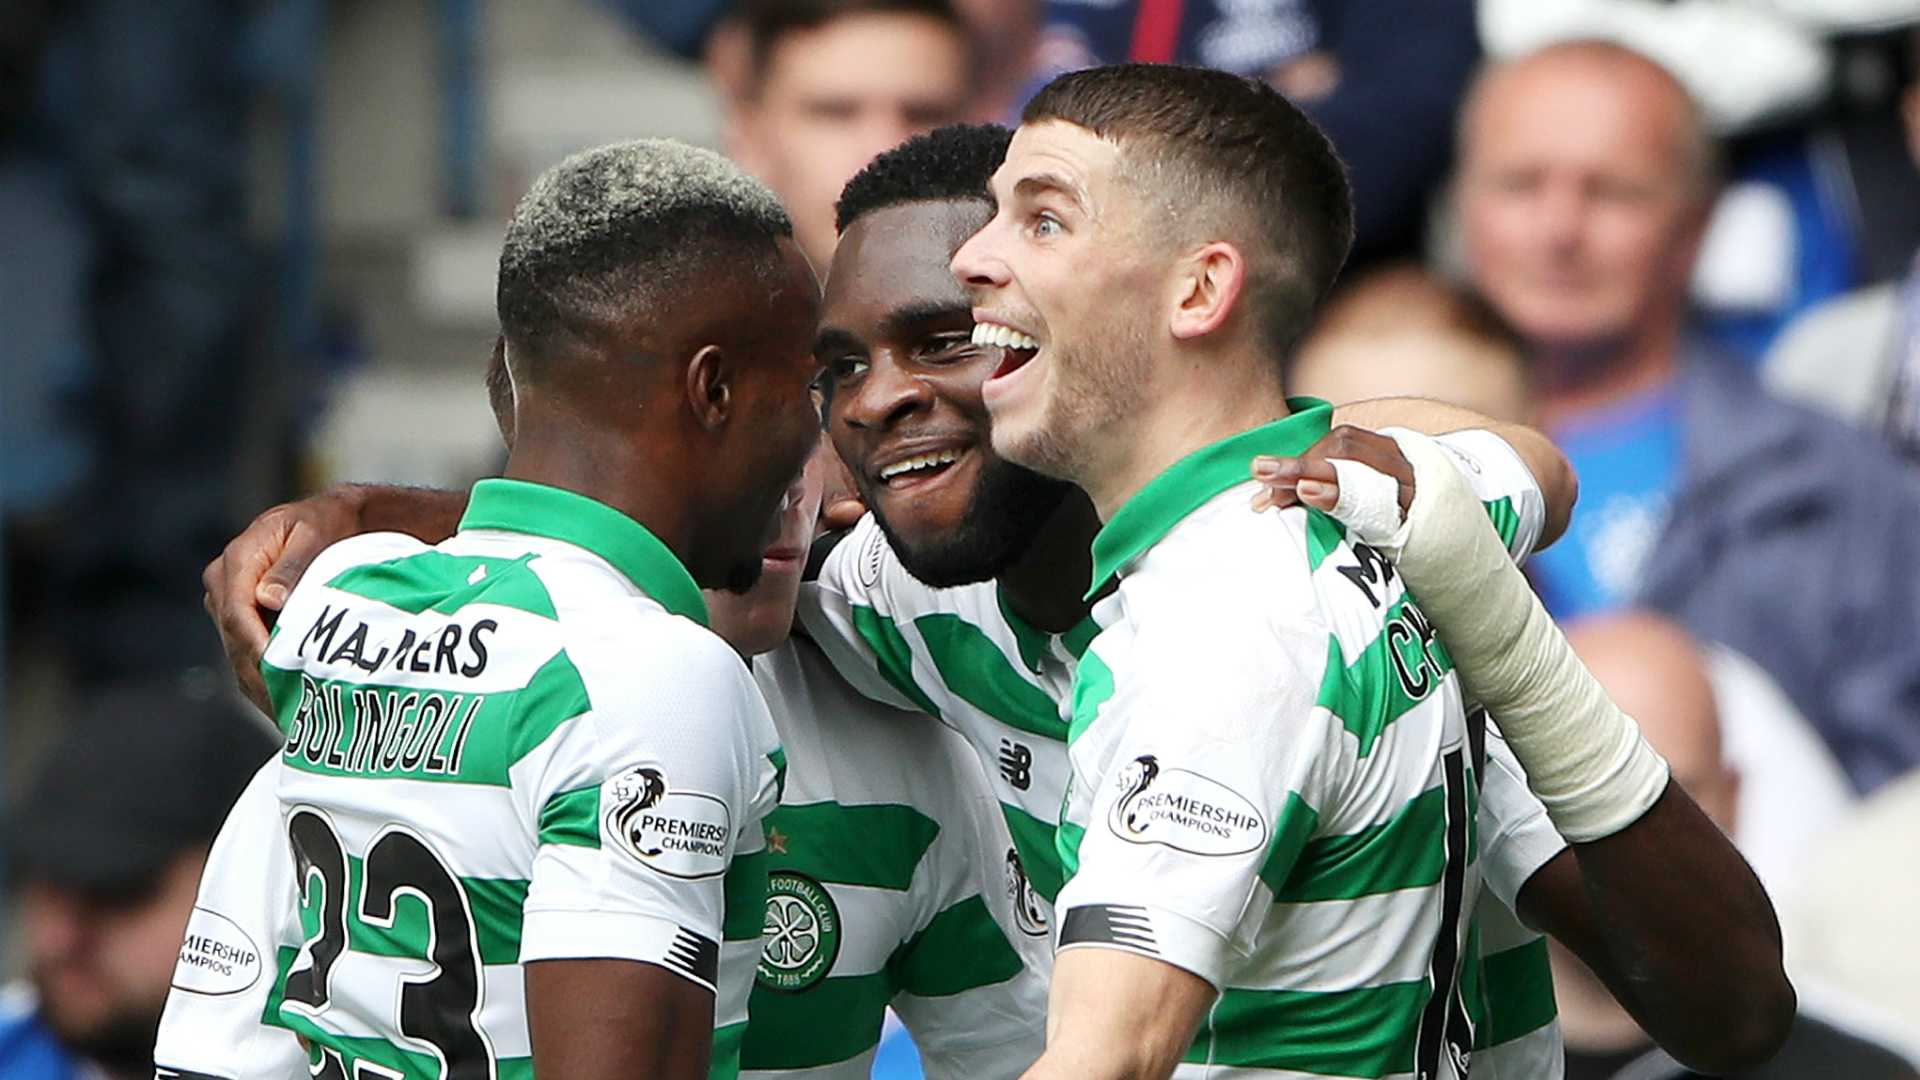 Rangers 0-2 Celtic: Edouard sets up Old Firm success for Hoops